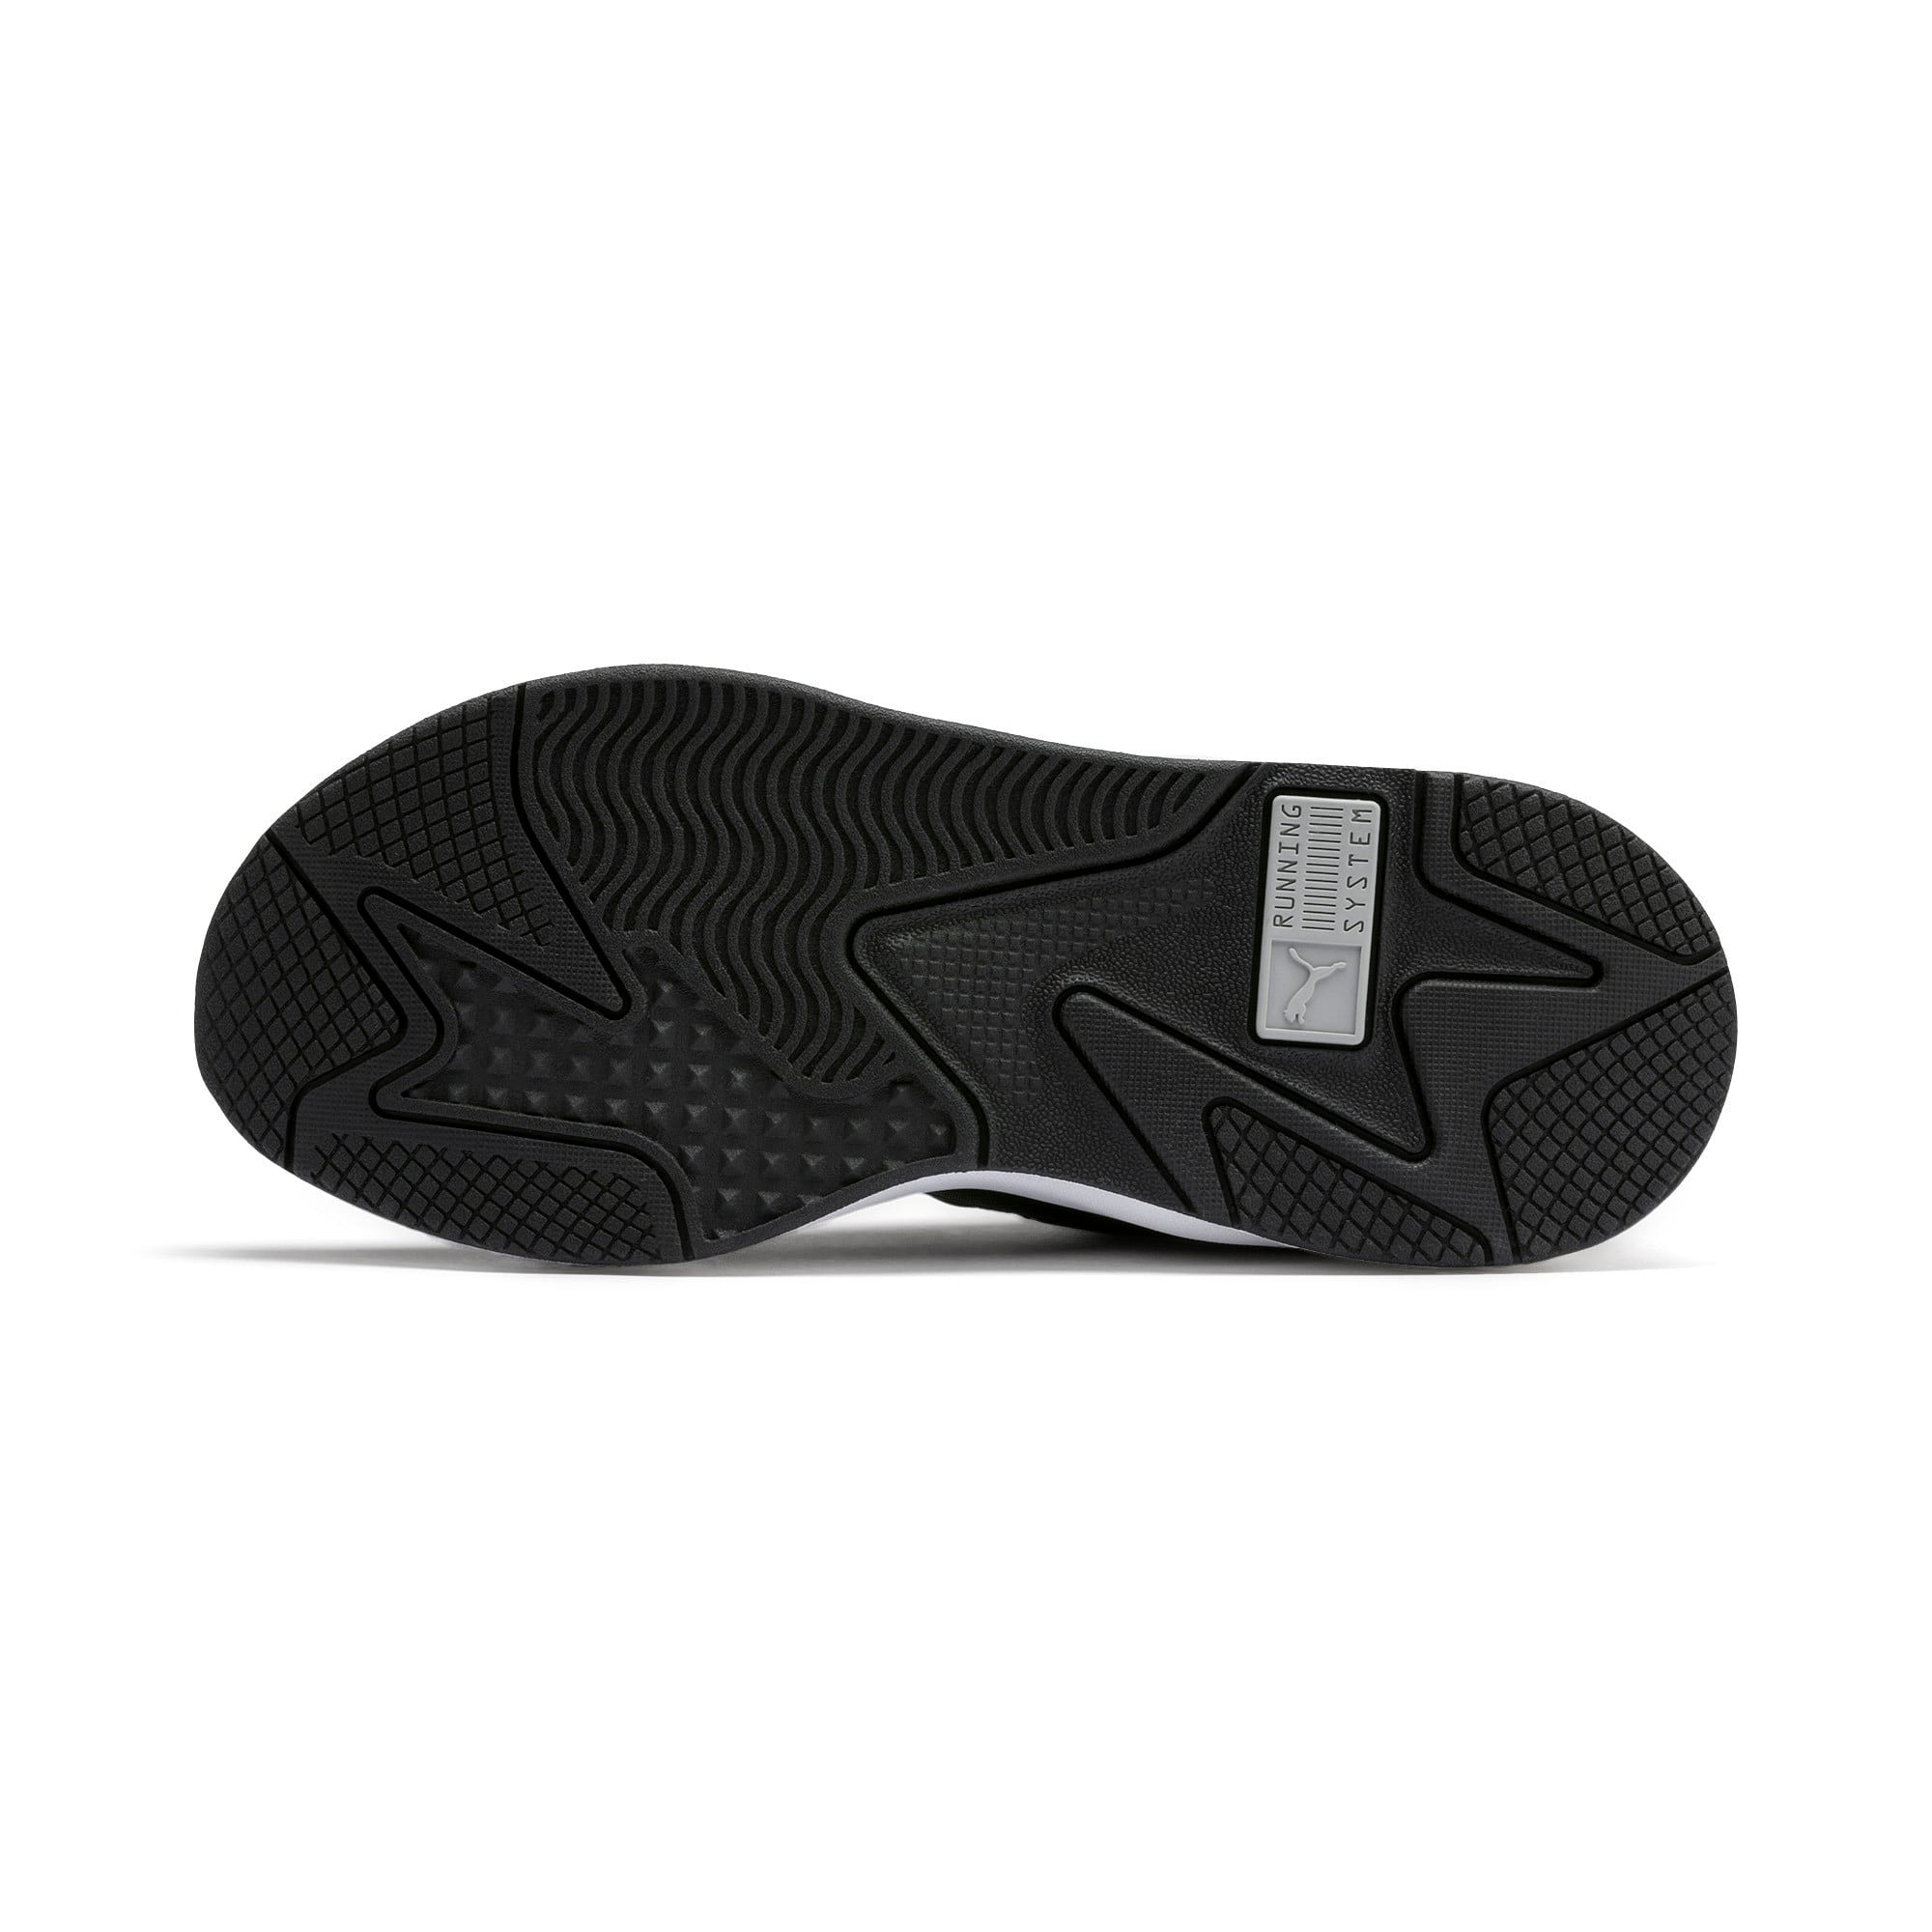 Thumbnail 5 of RS-X Softcase Trainers, Puma Black-Puma White, medium